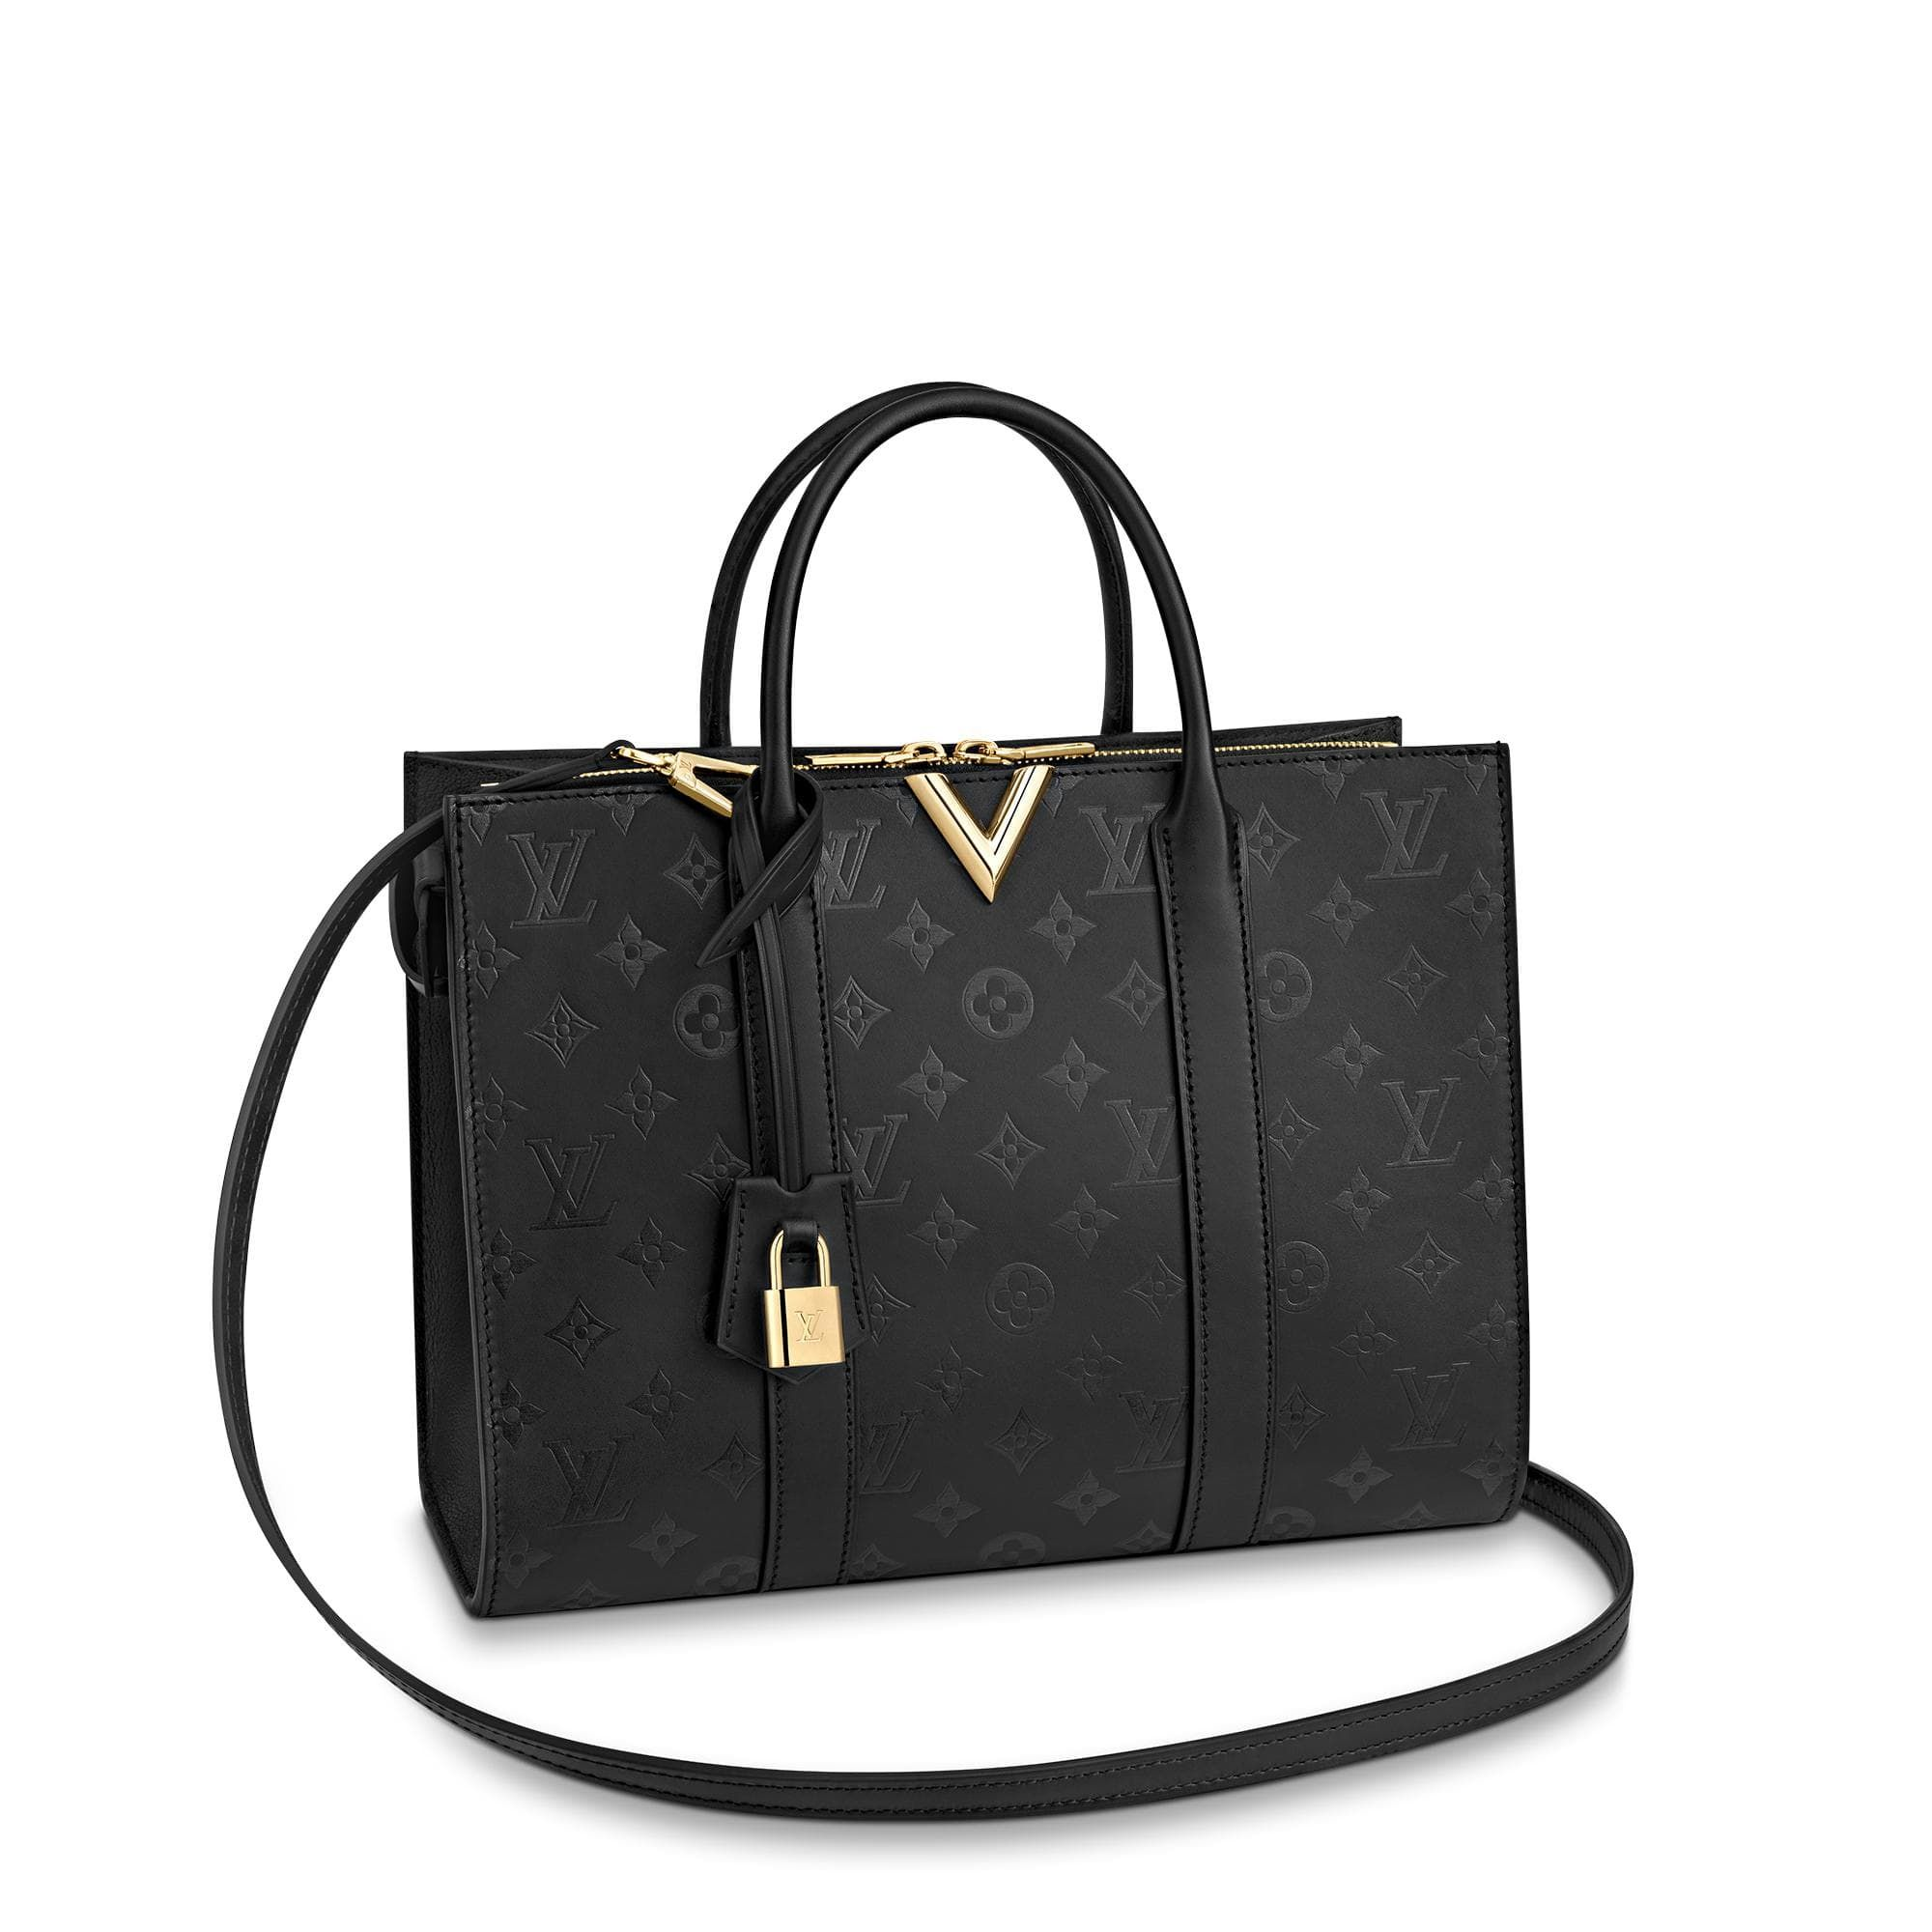 Very Zipped Tote Leather Handbags Louis Vuitton